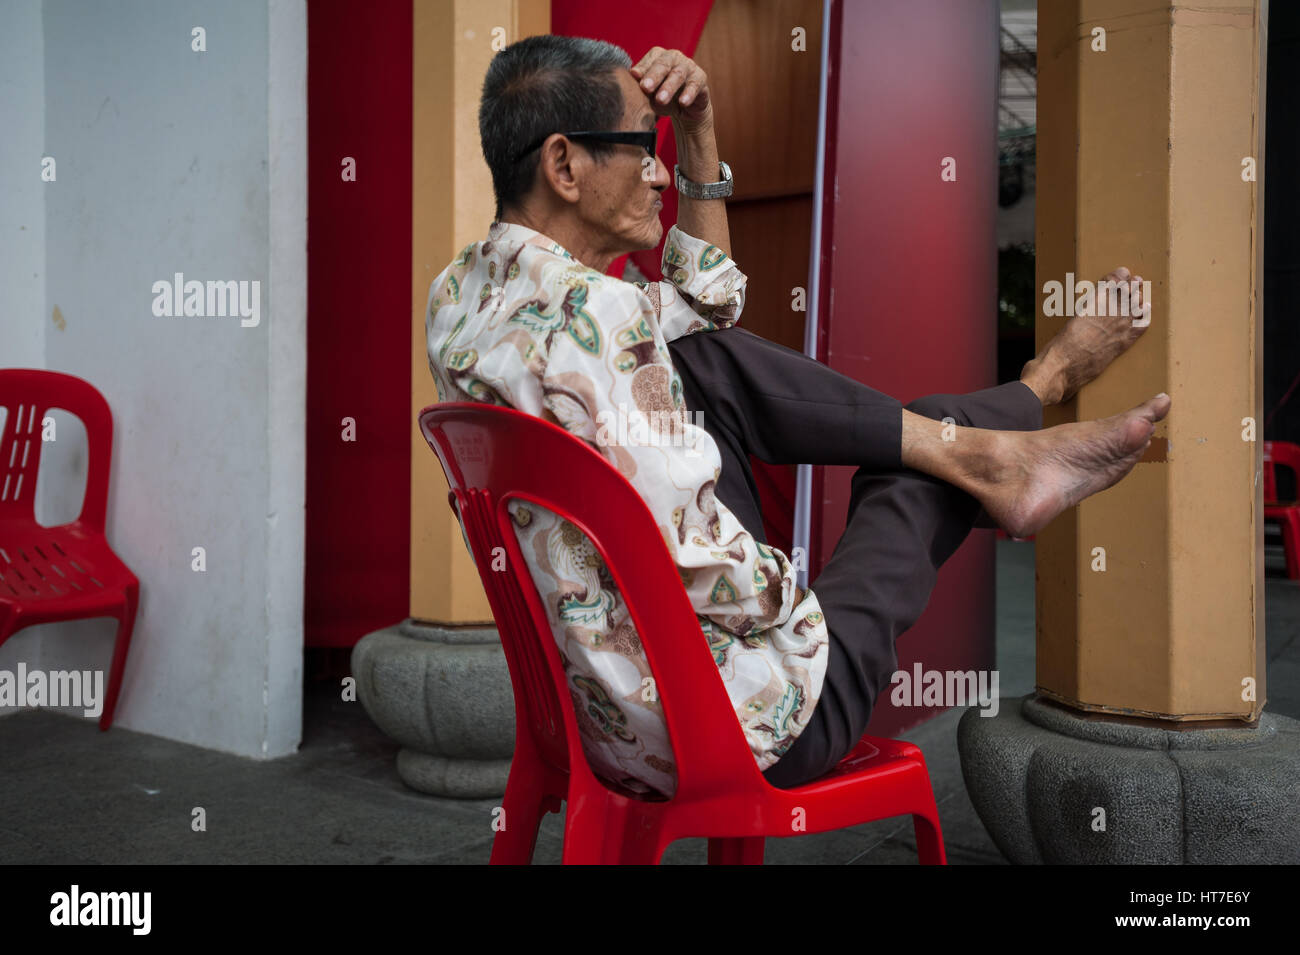 18.01.2017, Singapore, Republic of Singapore, Asia - A man relaxes on a plastic chair in Singapore's Chinatown district. Stock Photo